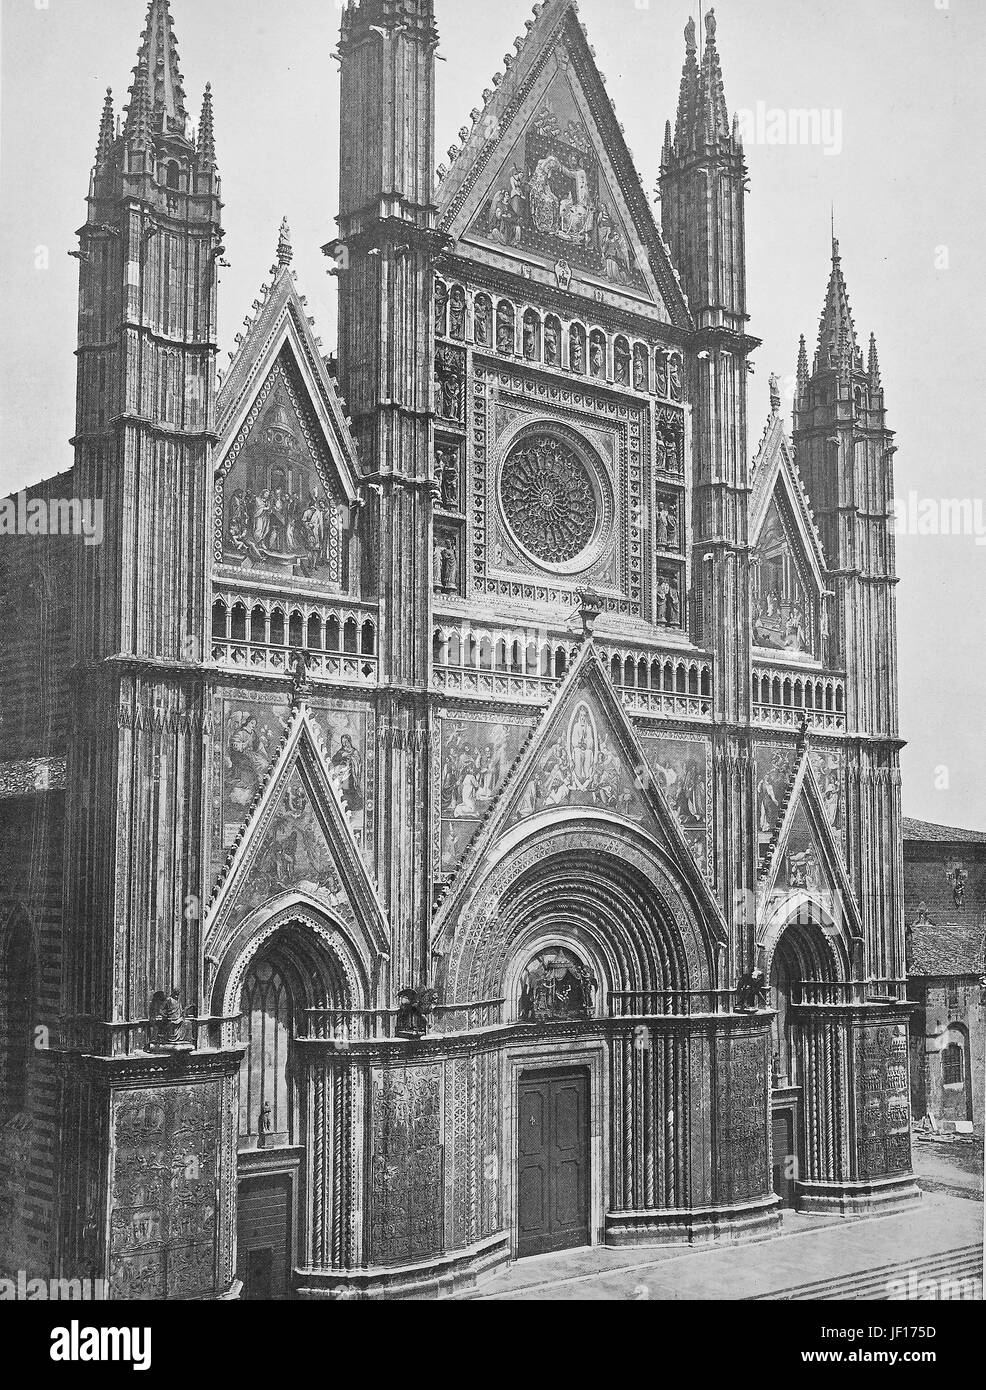 Historical photo of Orvieto, Orvieto Cathedral, Duomo di Orvieto, Cattedrale di Santa Maria Assunta, a large 14th - Stock Image